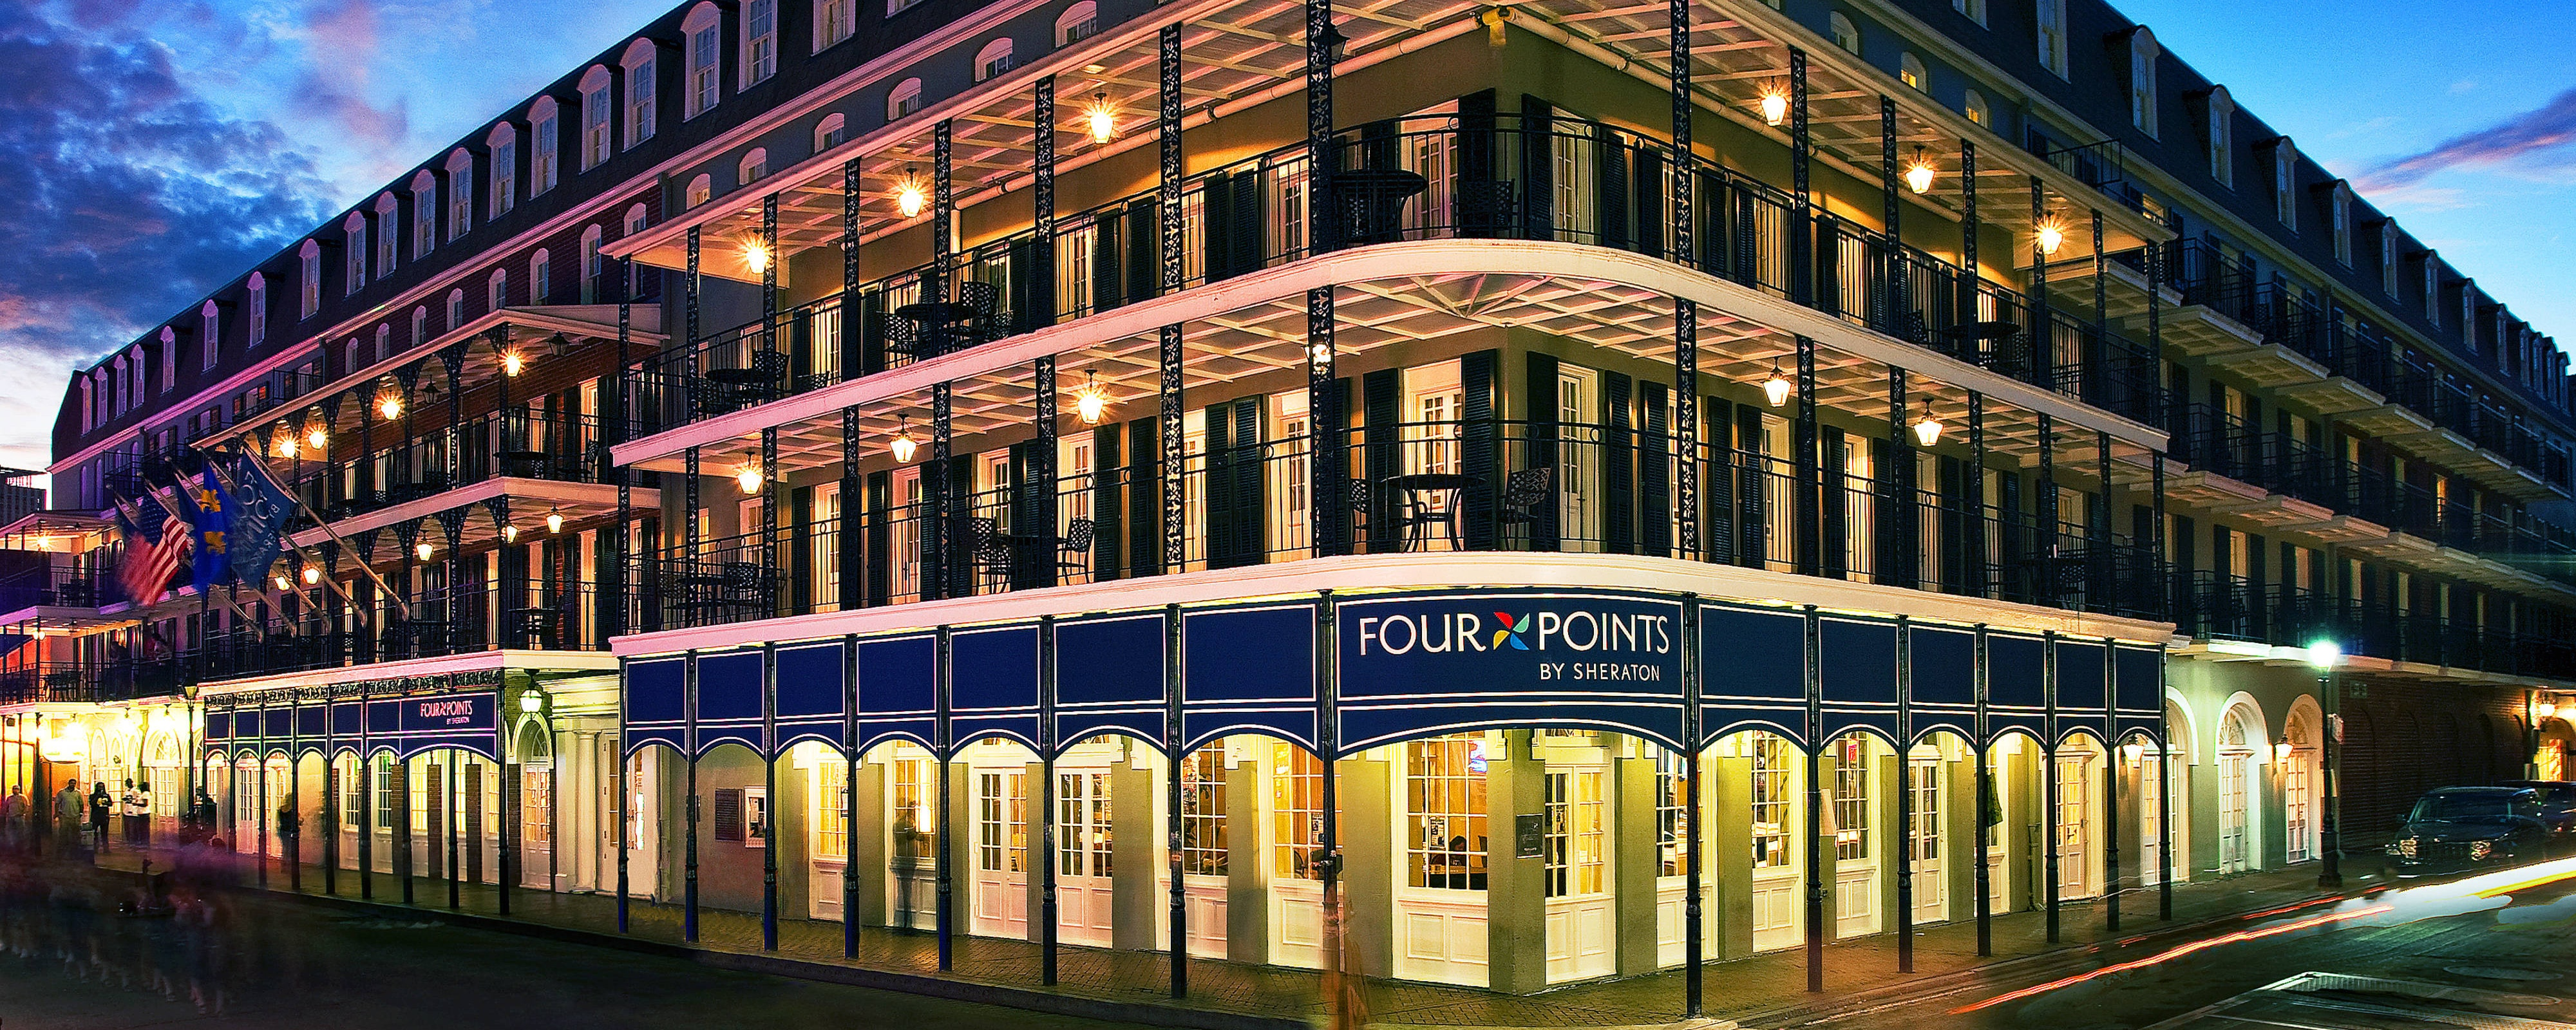 Best Restaurants In New Orleans 2020.French Quarter New Orleans Hotel Four Points By Sheraton